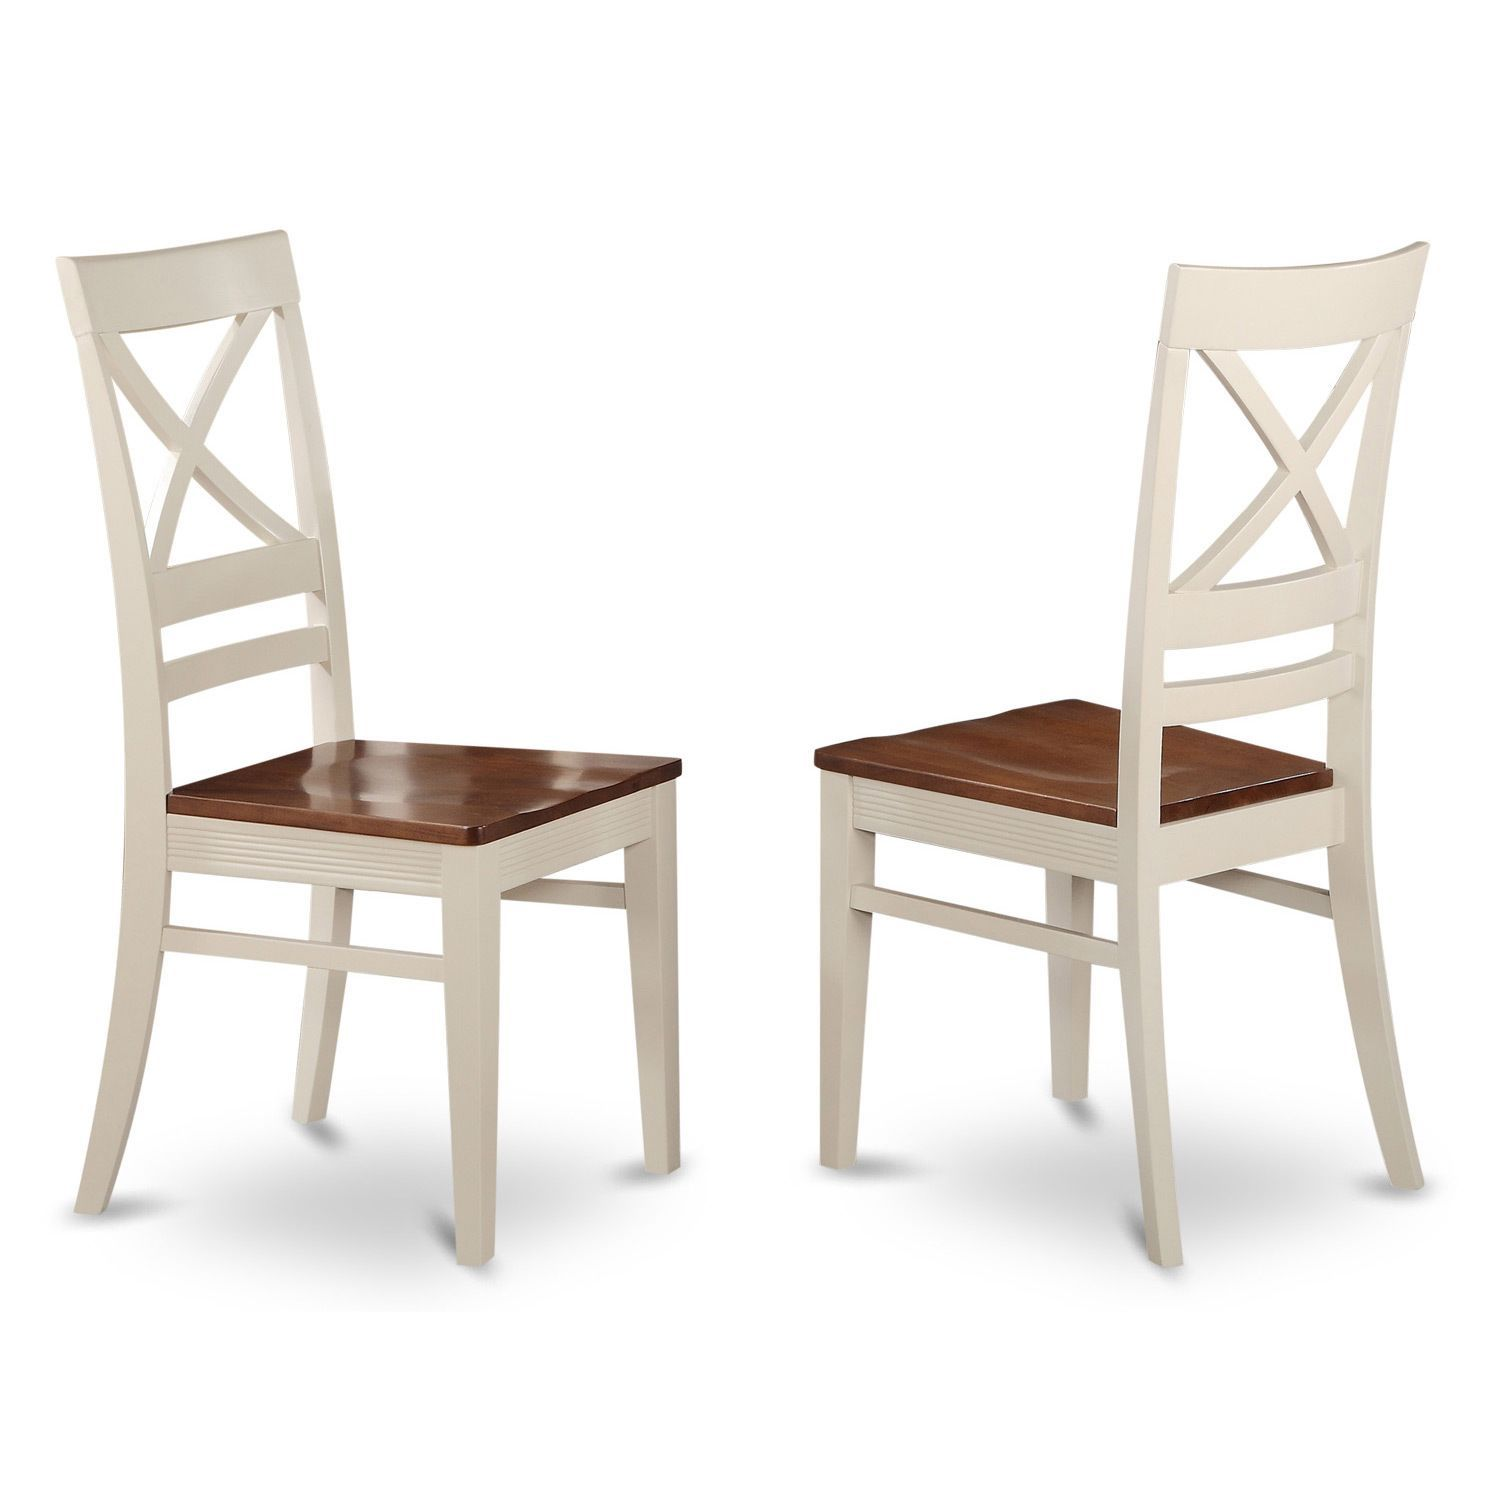 Quincy Wooden Seat X Back Dining Chair Buttermilk Cherry